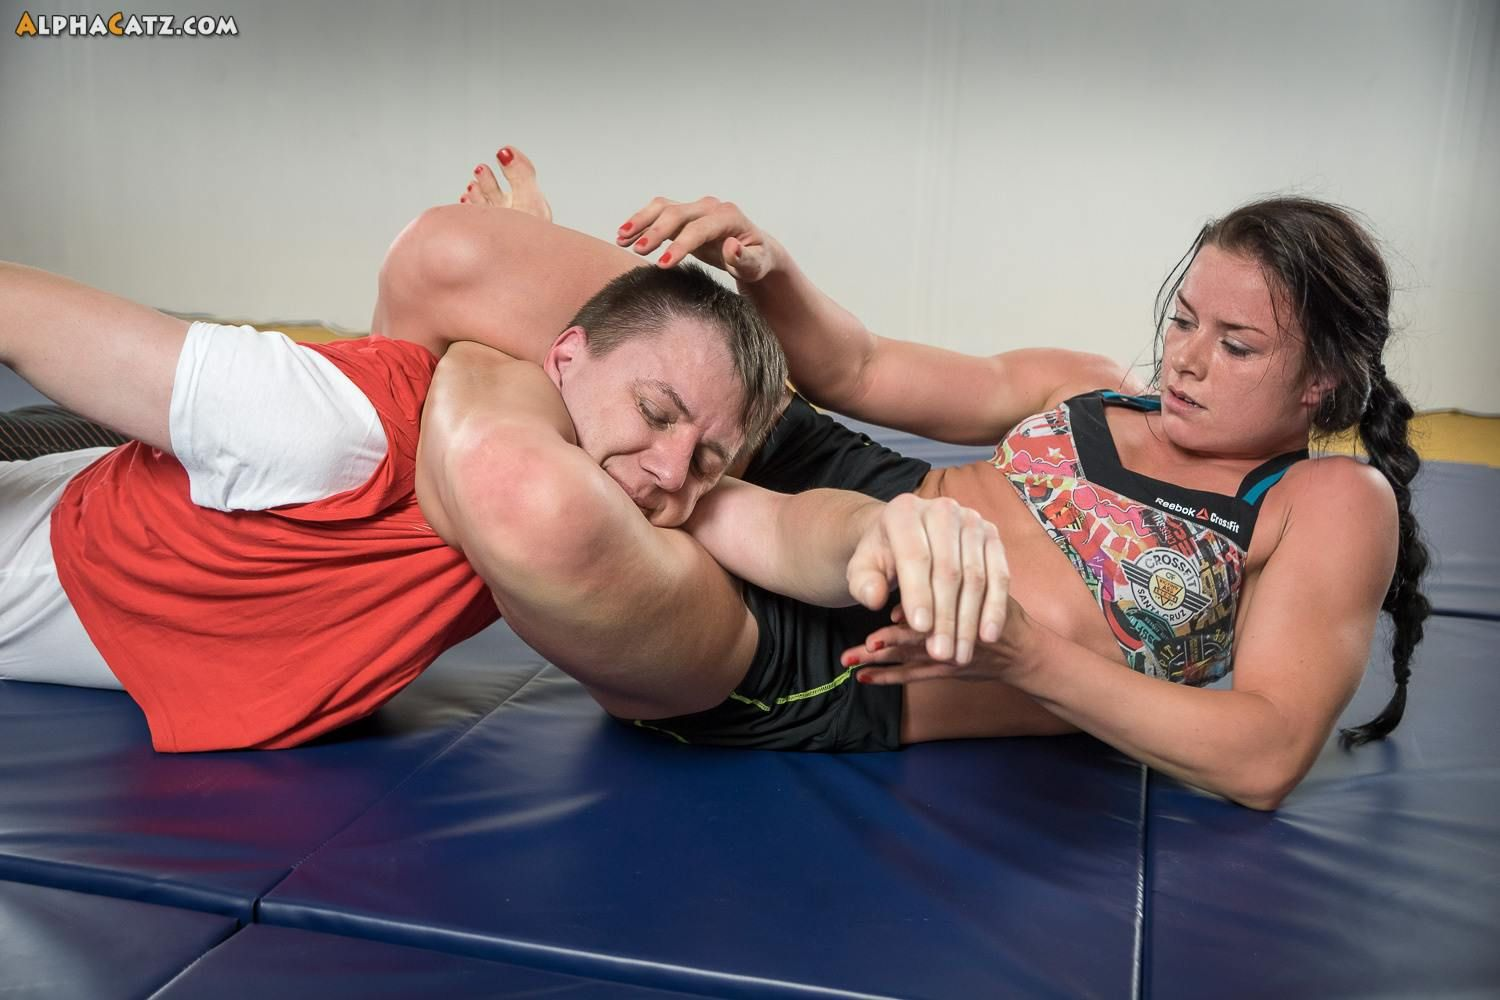 Alphacatz pinmohamed on tough girl | mixed wrestling, athletic